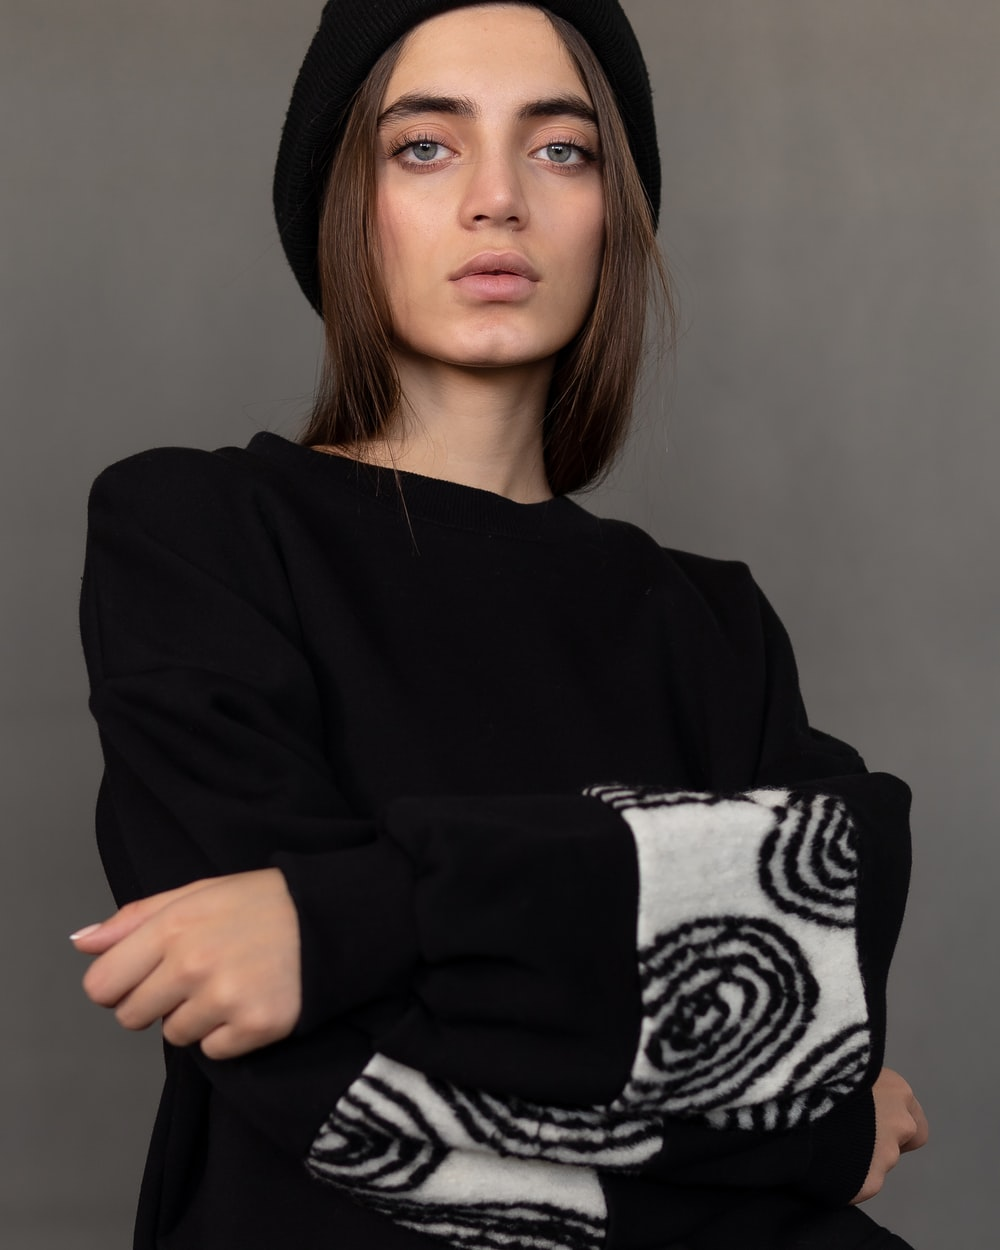 woman in black and white long sleeve shirt